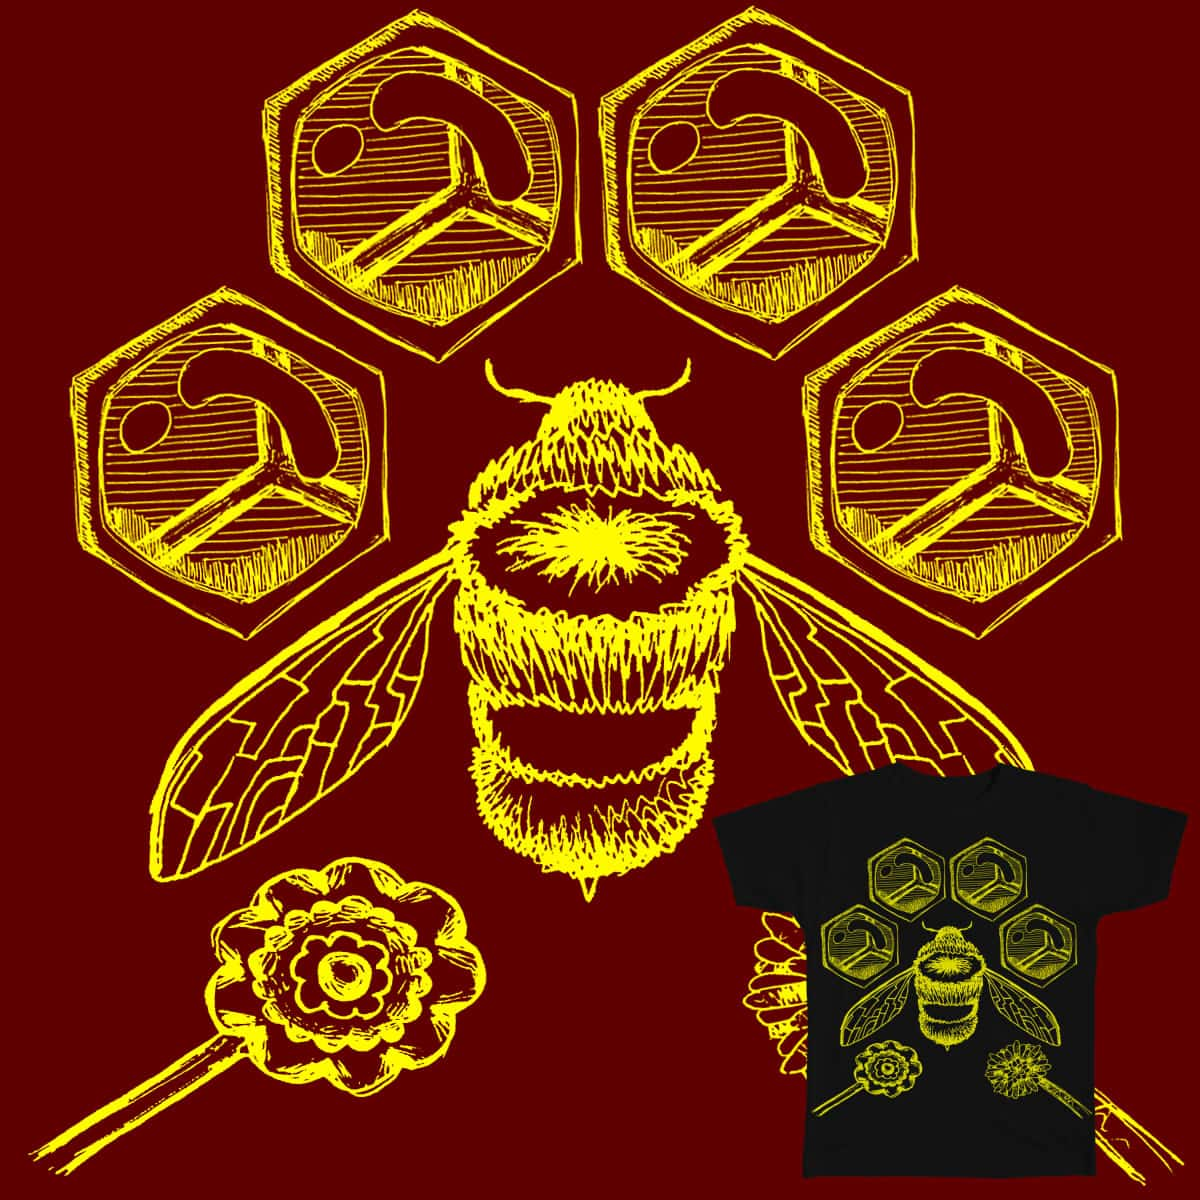 Bee Business by Dr_Donoh-onovan on Threadless